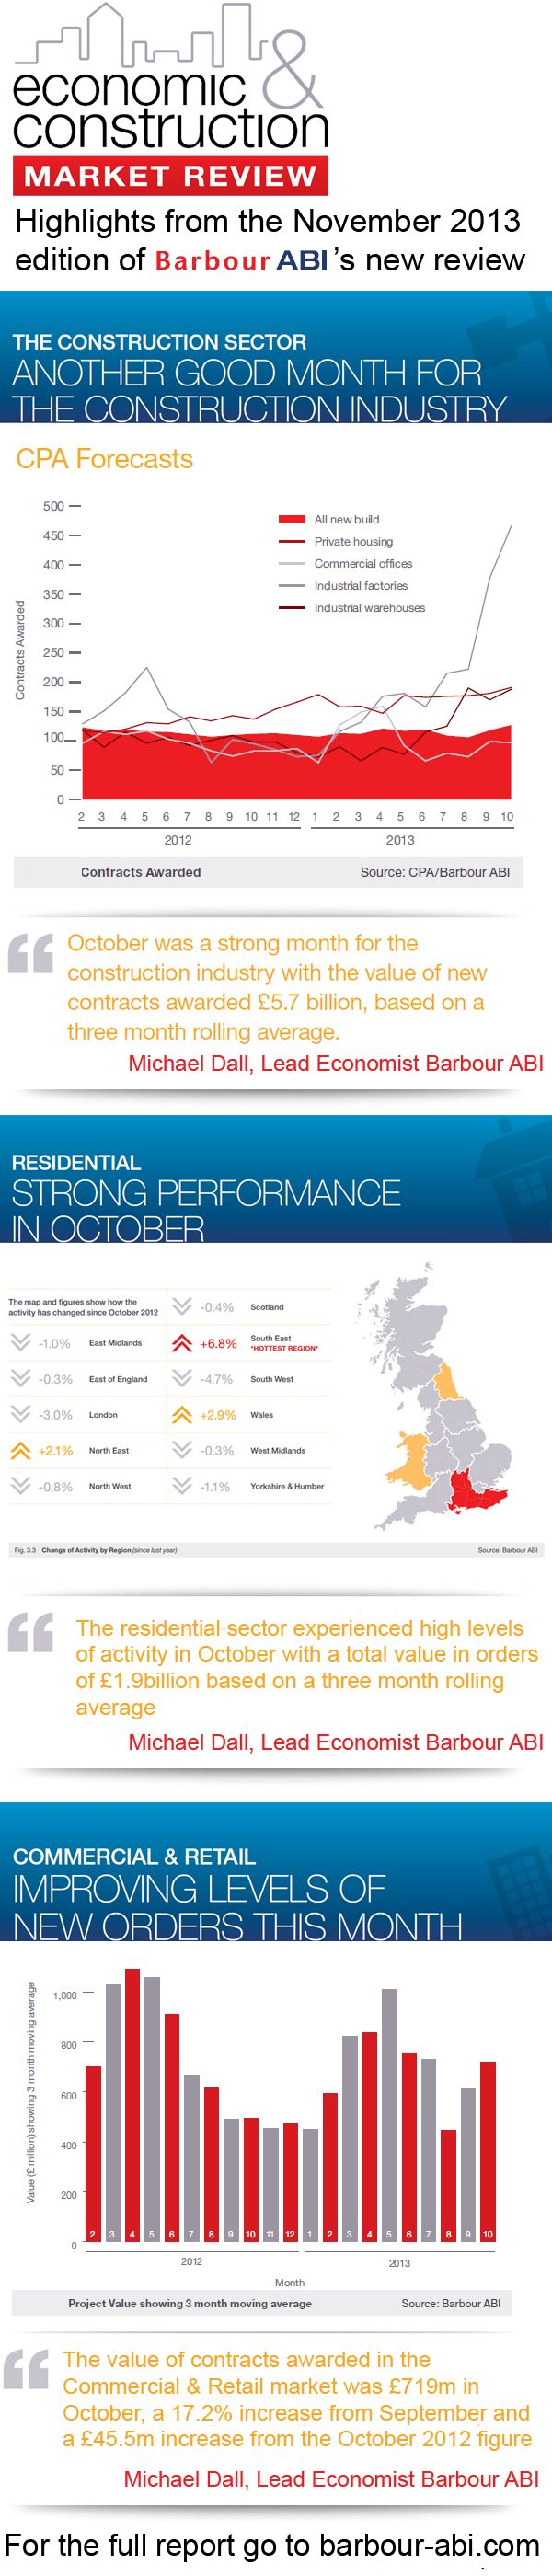 Barbour ABI has released the first issue of The Economic and Construction Market Review.  This new monthly report is designed to give valuable, current insight into UK construction industry performance.